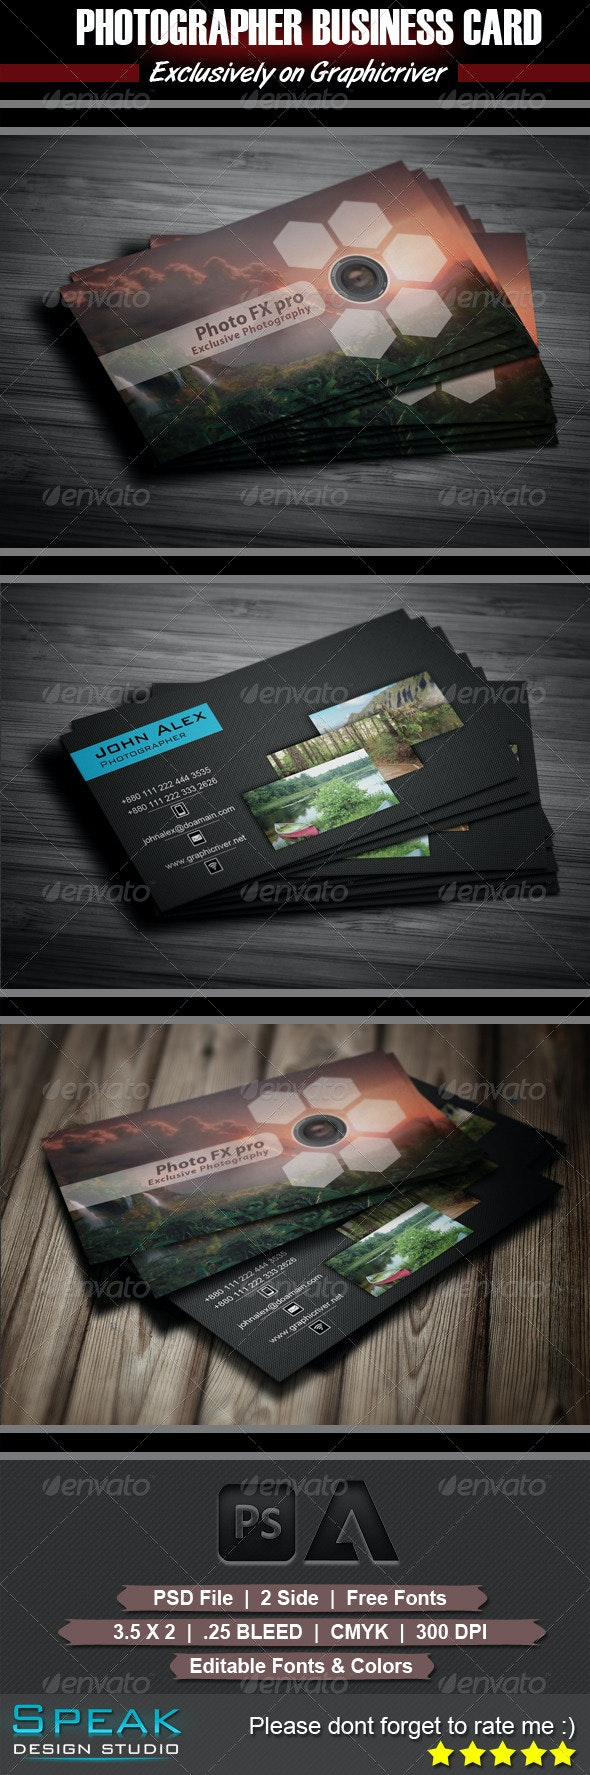 Photographer Business Card Design - Industry Specific Business Cards